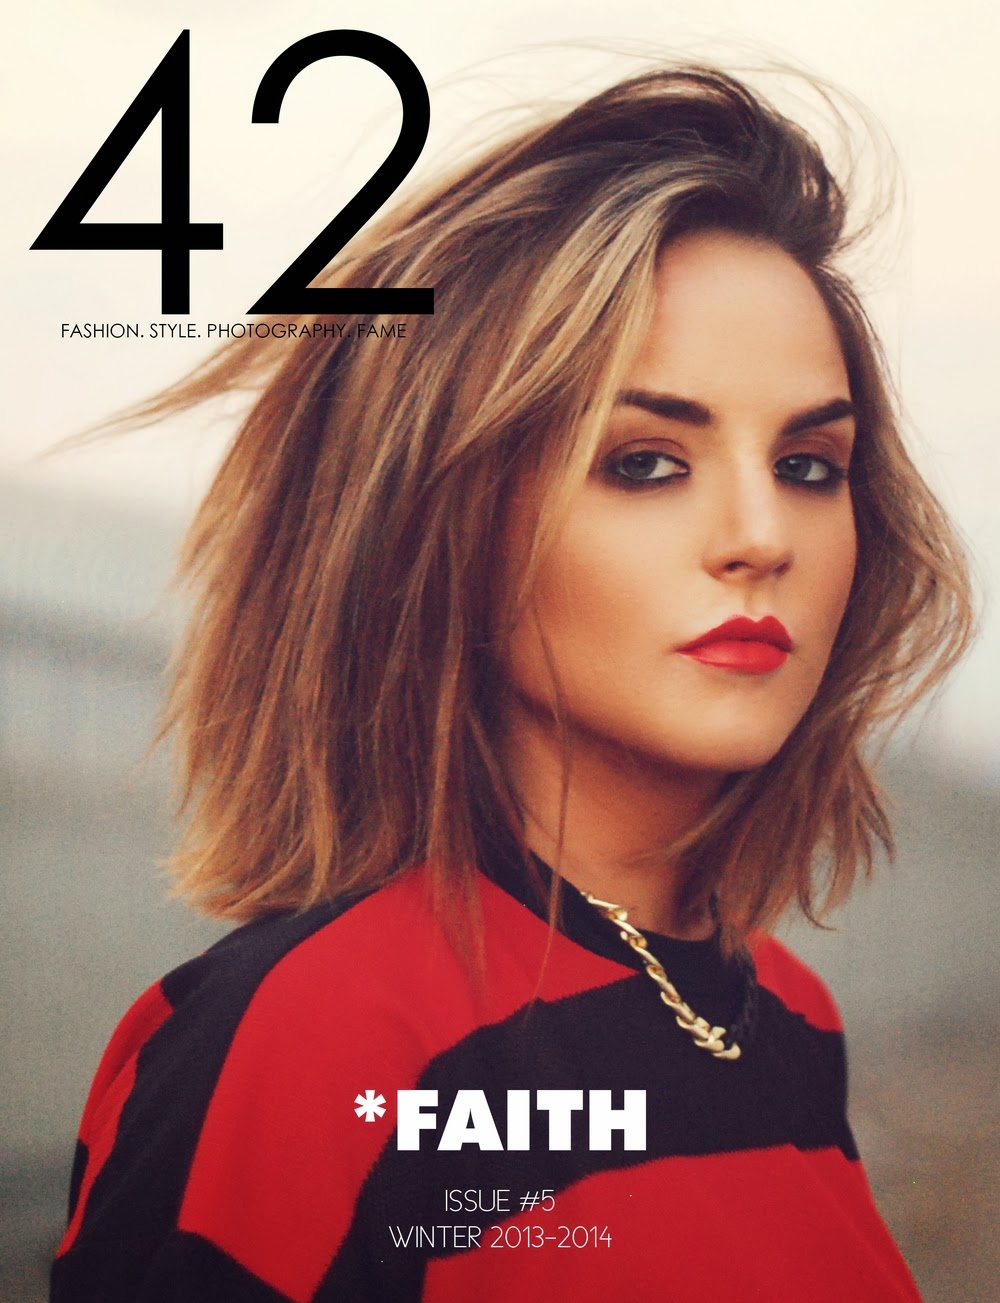 42-magazine-faith-1.jpg